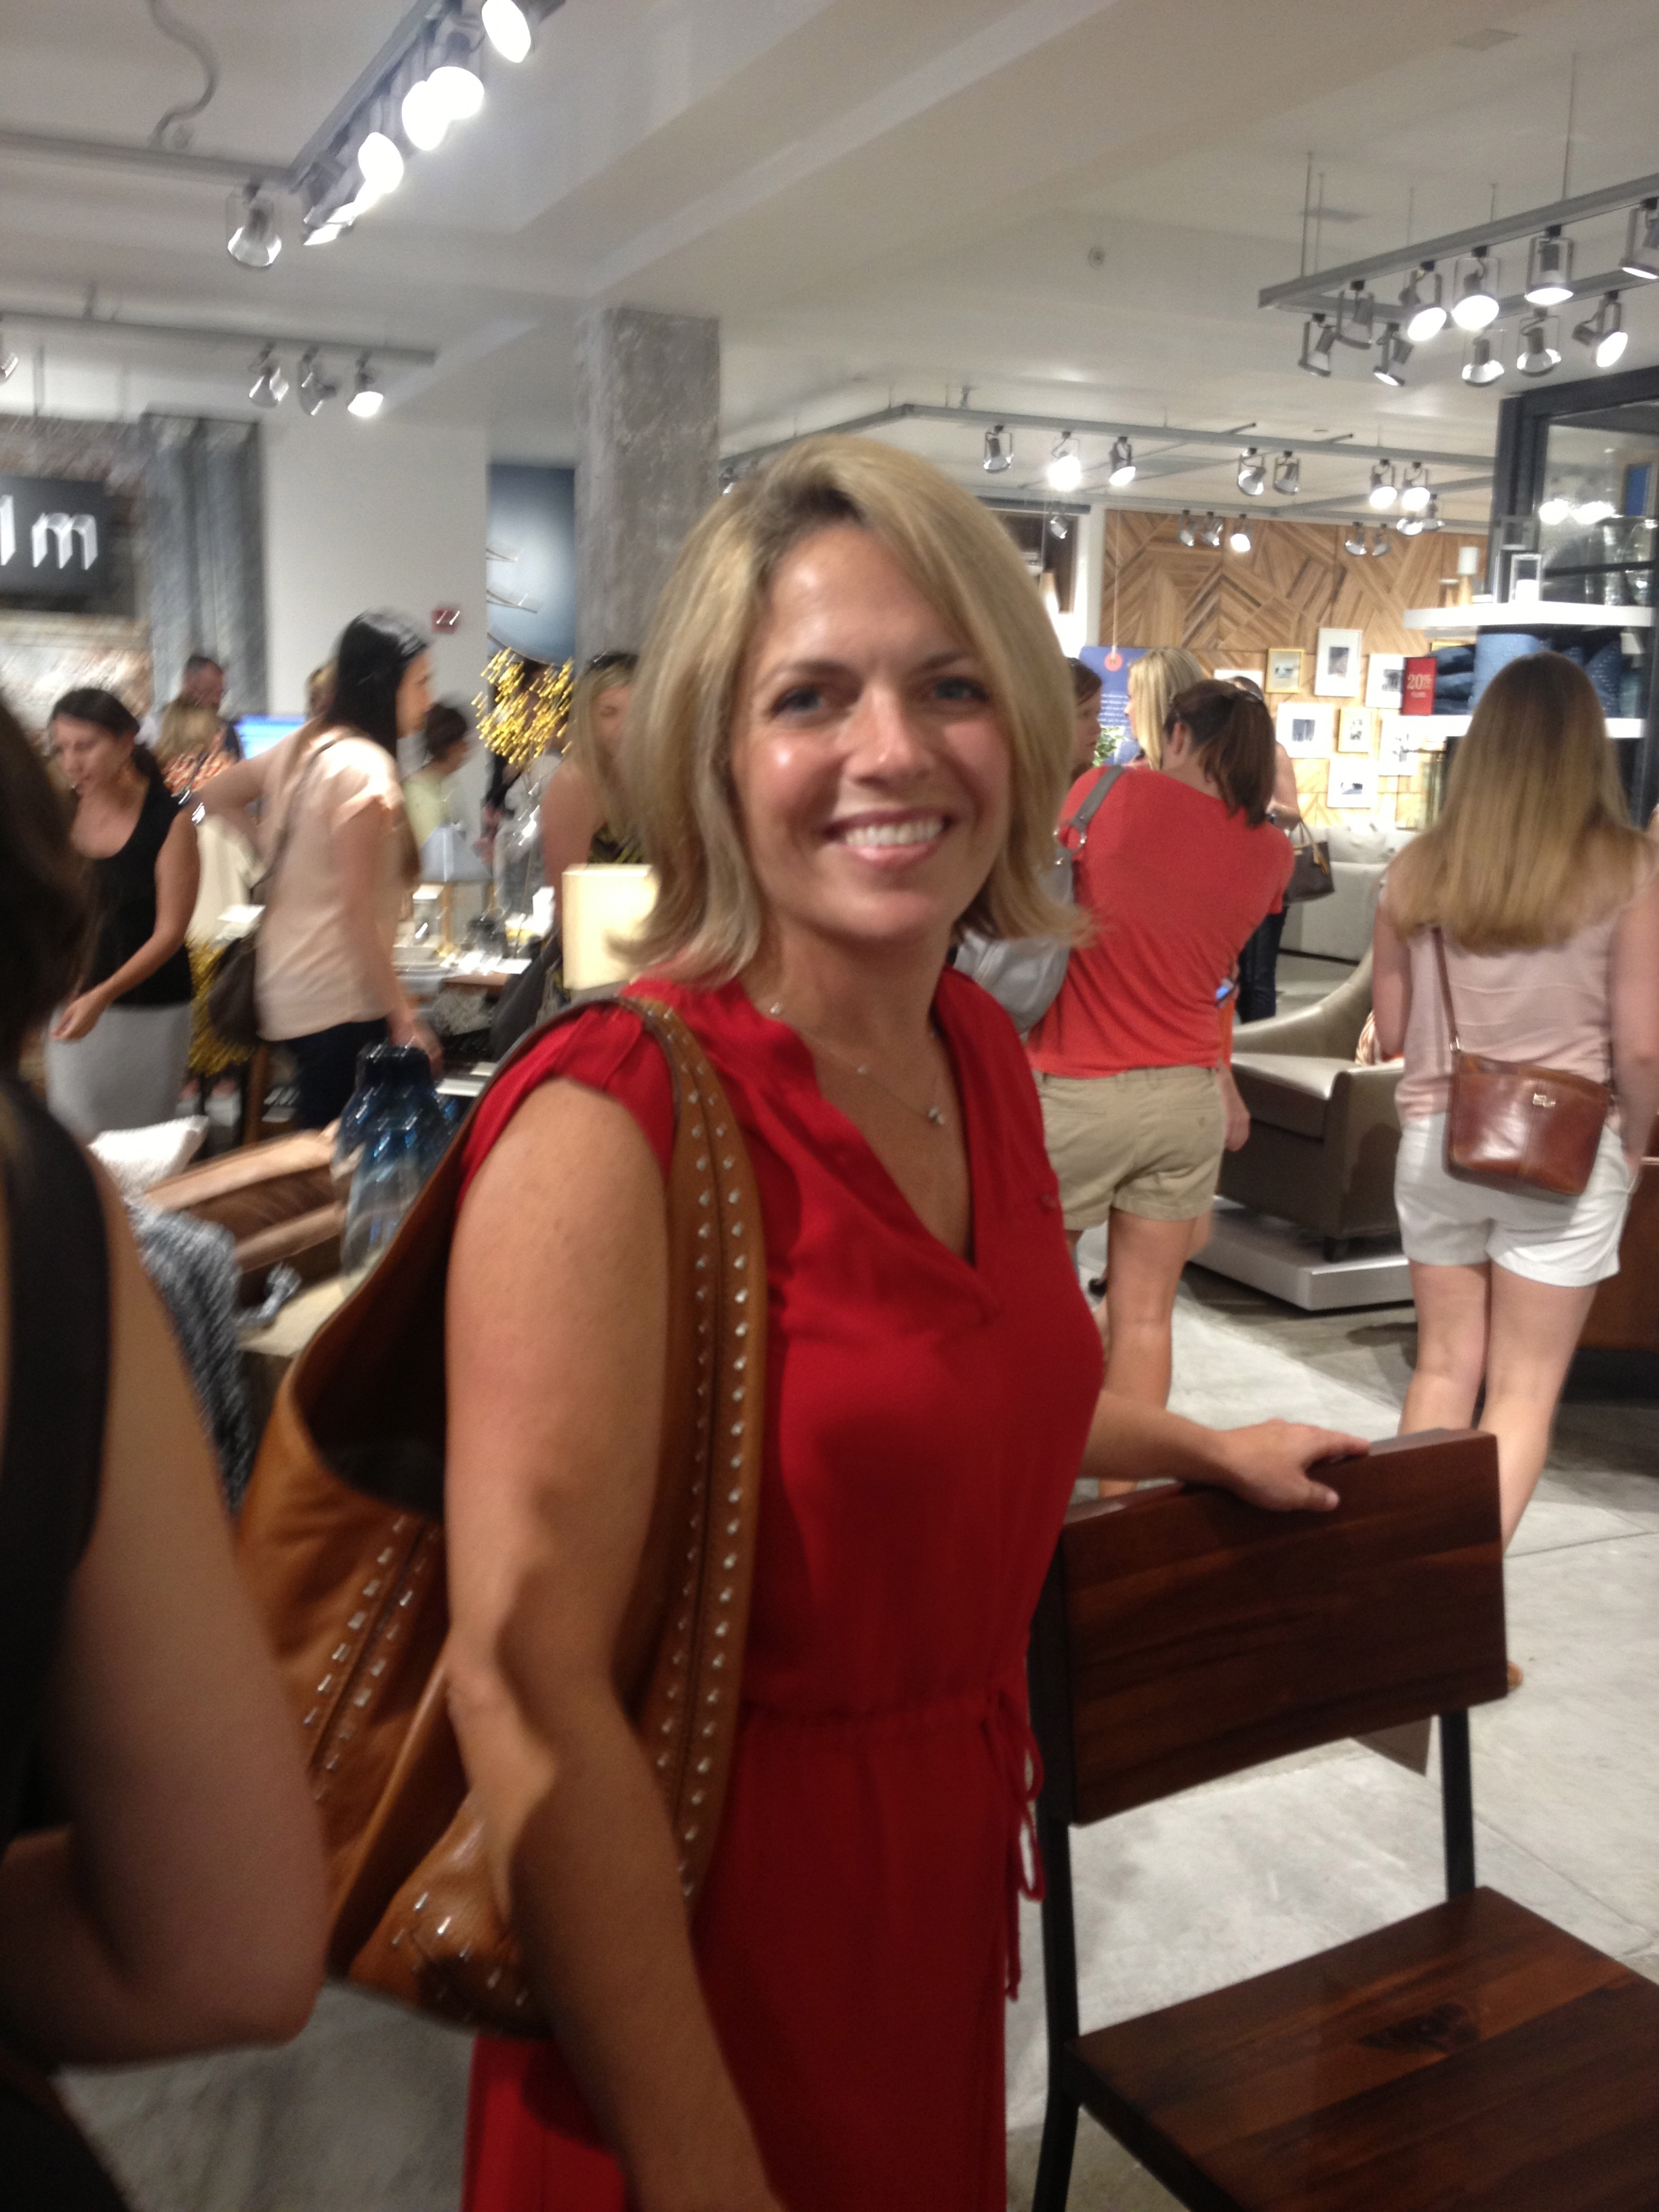 Jessica looking good at the West Elm opening in Kansas City which was a hard task because it was about 100 degrees with all those people in there.